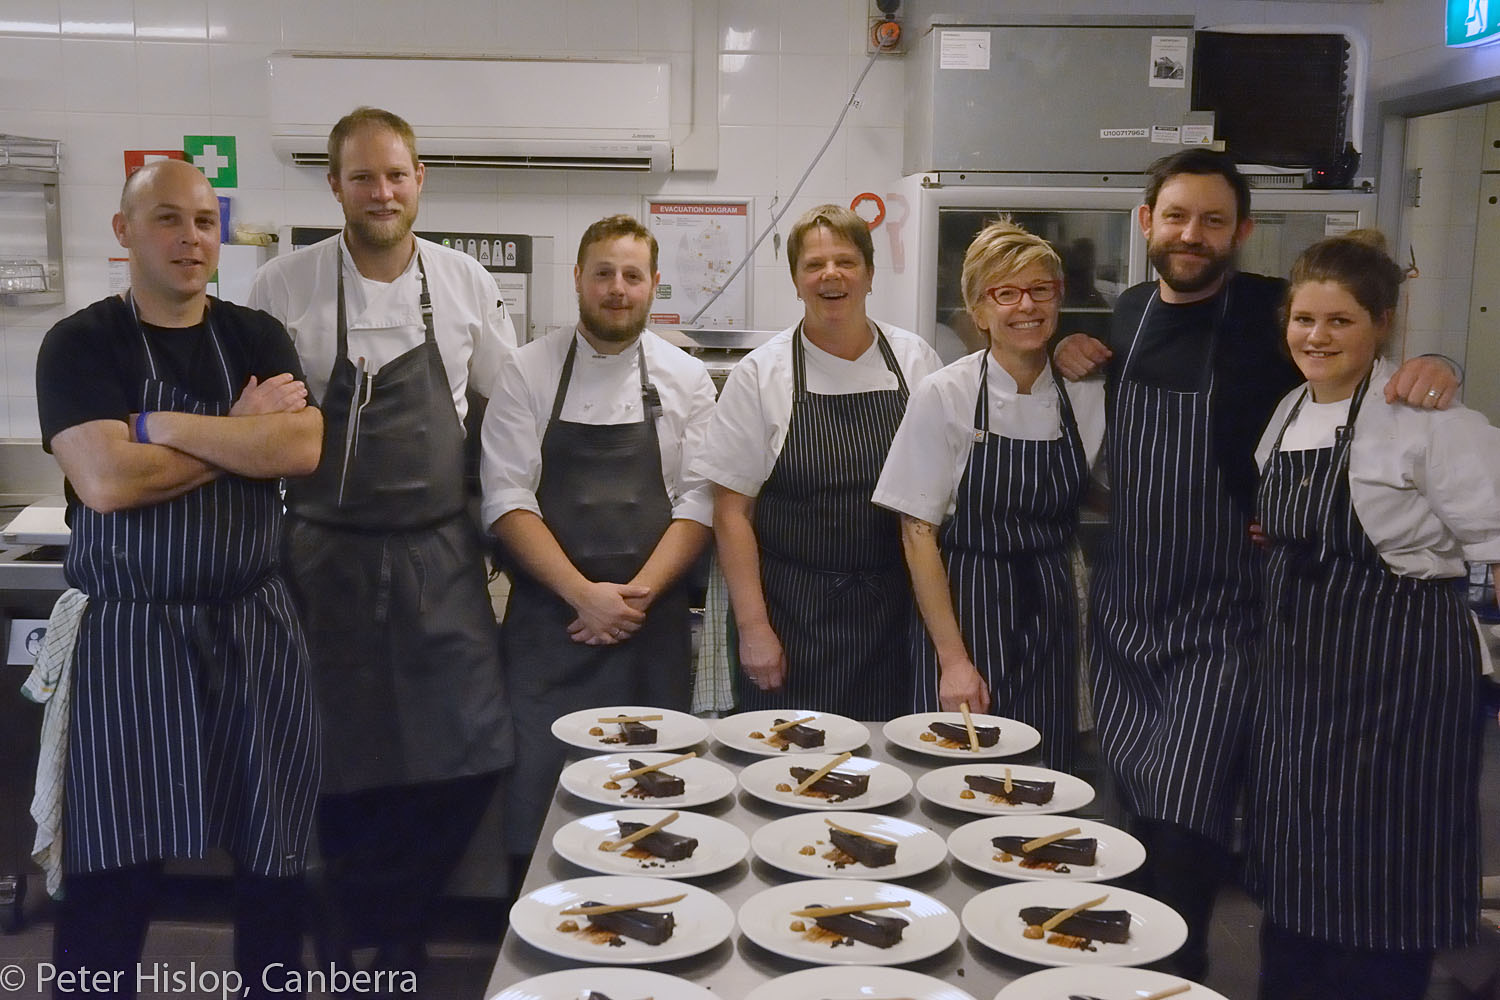 Chefs of Canberra CIMF Gala Dinner at The Conservatory. The wonderful kitchen team